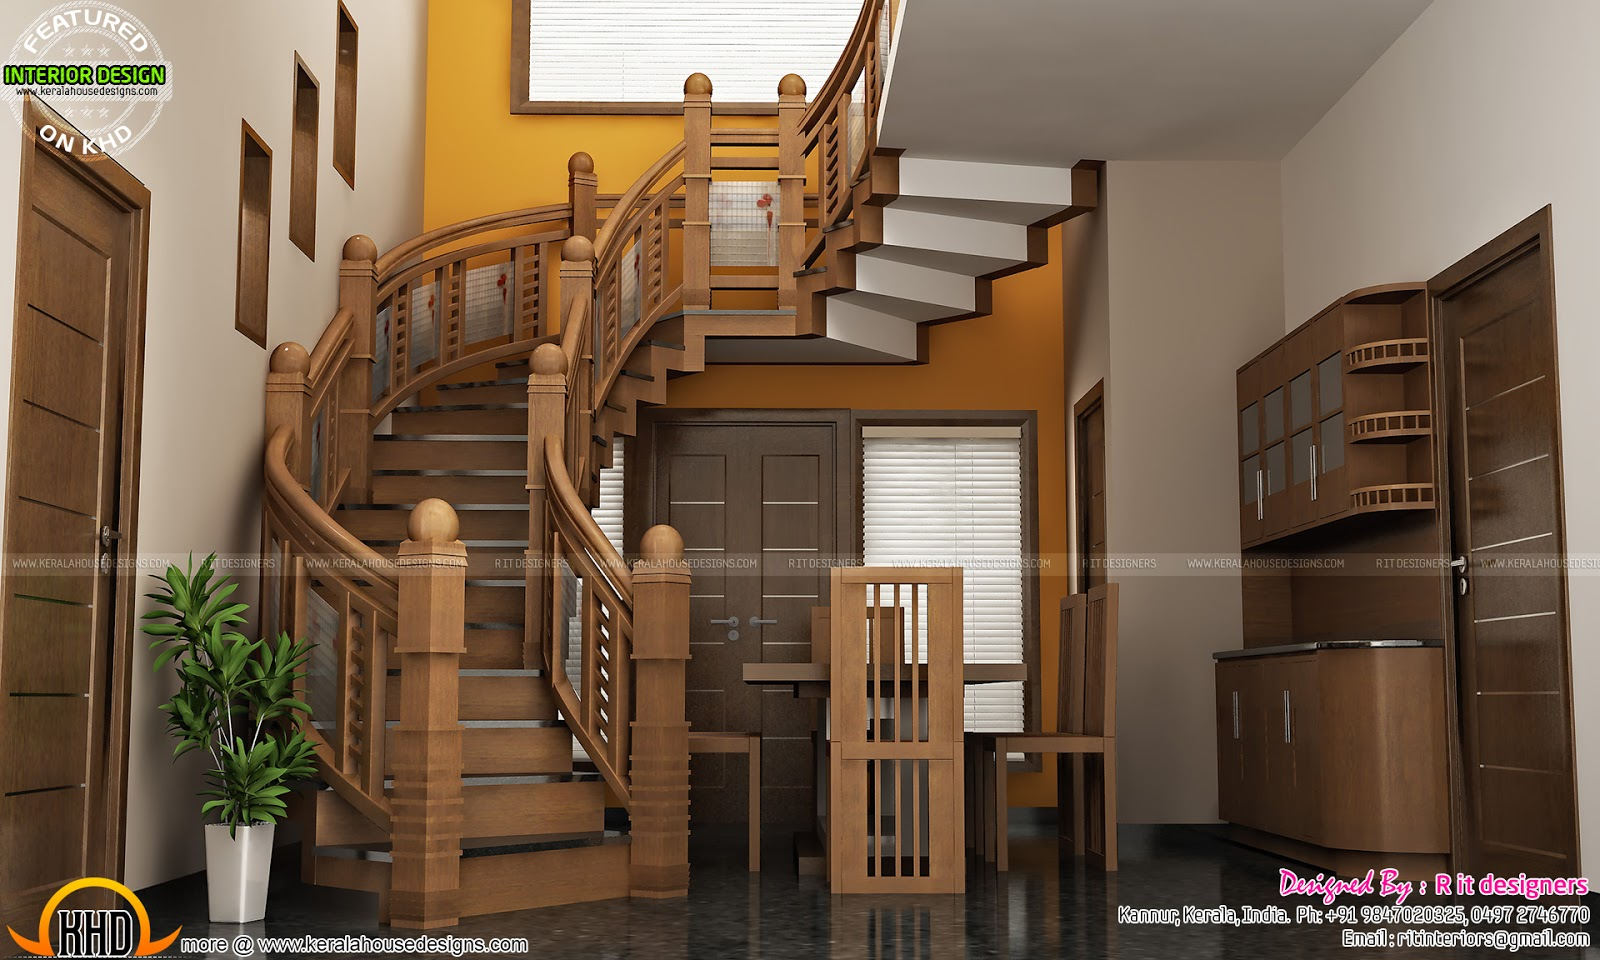 Under stair design wooden stair kitchen and living for New house interior designs